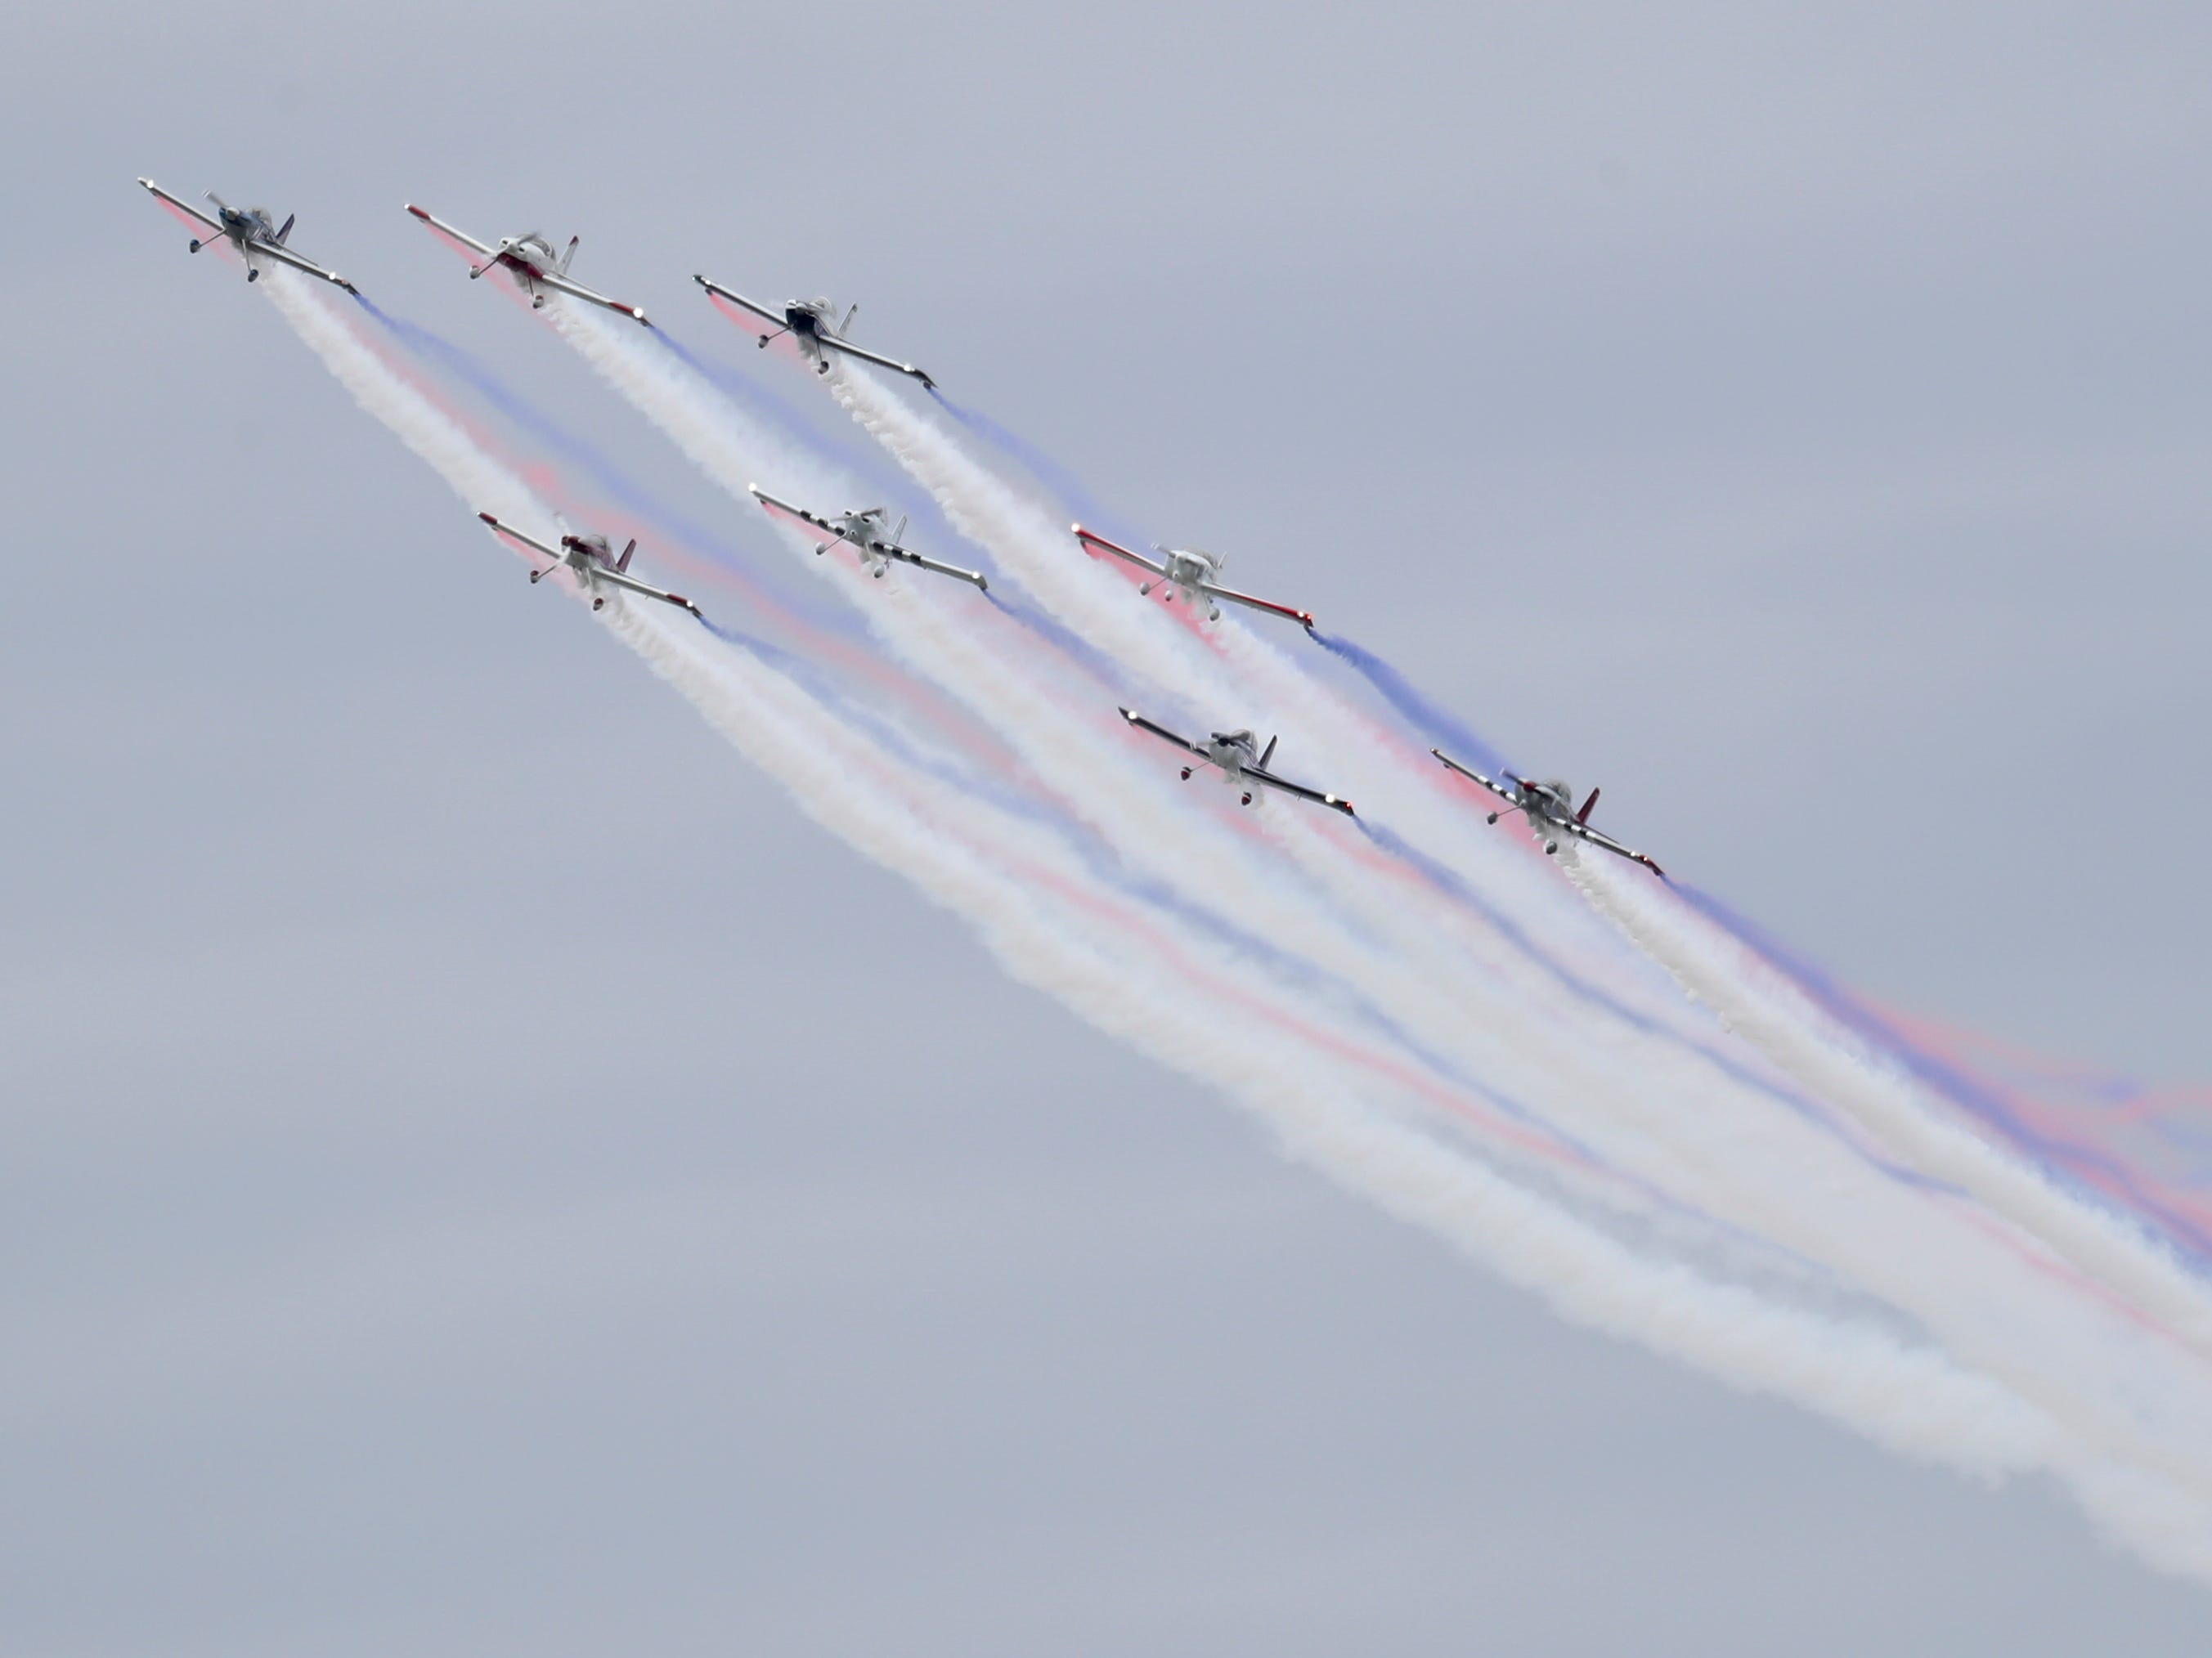 The KC Flight: RV-4 Color Smoke trails entertain the crowd at Thunder Over Louisville on April 13.